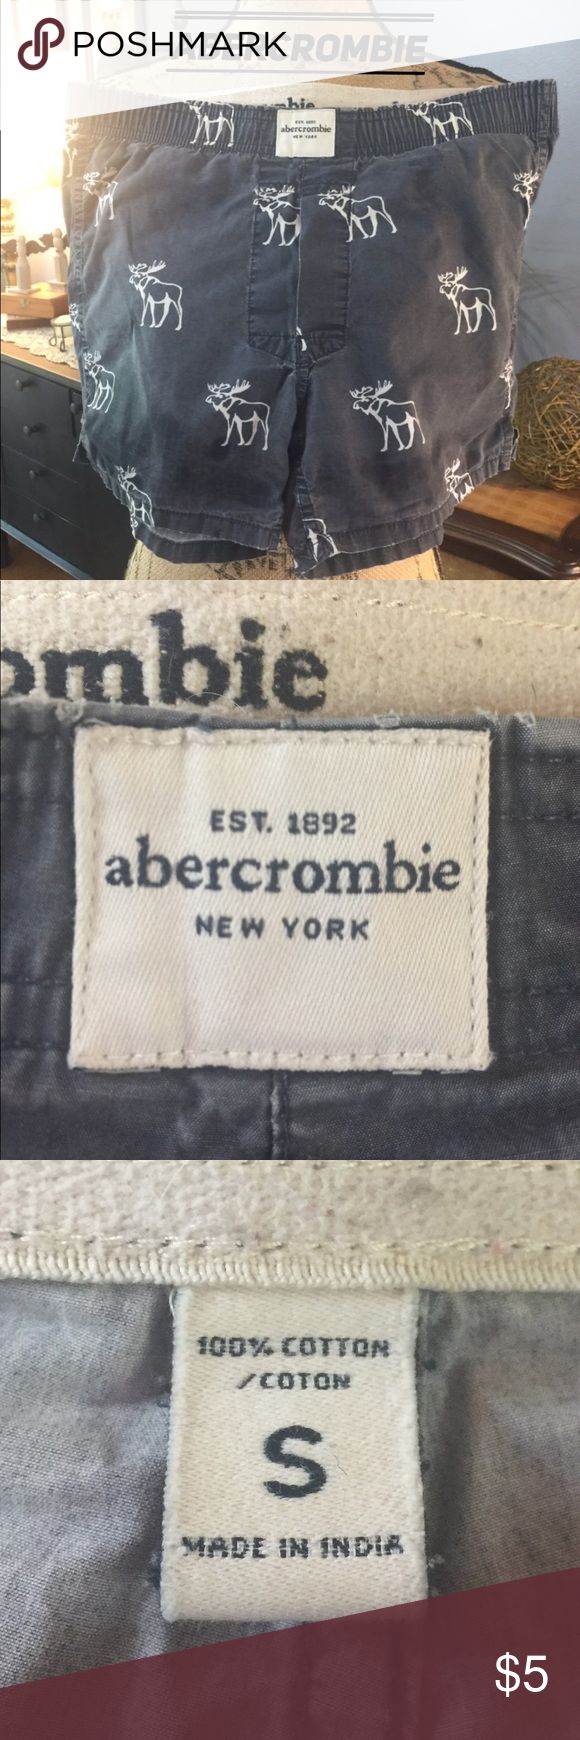 """Abercrombie Unisex Boxer Shirts Cotton boxer shorts, size small, from Abercrombie. In my opinion, these can be unisex. THIS IS A RE-POSH. I bought these to use them as sleep shorts & although I wear a size small in other Abercrombie clothing (sweats, etc), these shorts wouldn't go over my hips! 😱 They don't say Abercrombie """"kids"""", so I'm assuming they're adult size small? Would best fit a child's size large, in my opinion. (My 12 yr old daughter is a size 10-12 girl's size & they're a bit…"""